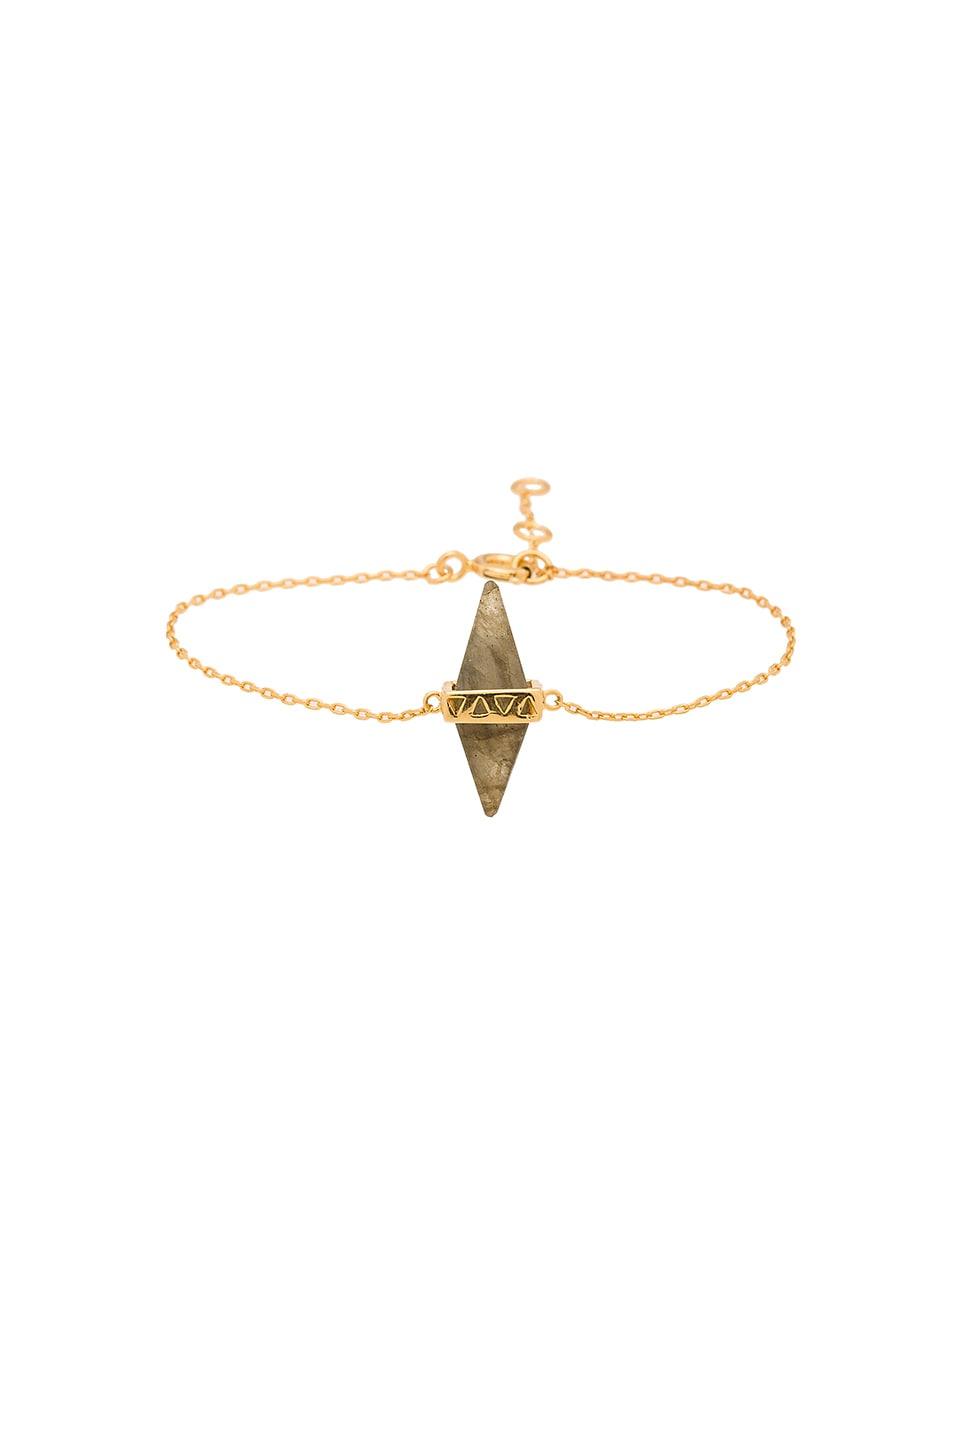 joolz by Martha Calvo Gemstone Dagger Bracelet in Gold & Laboradite